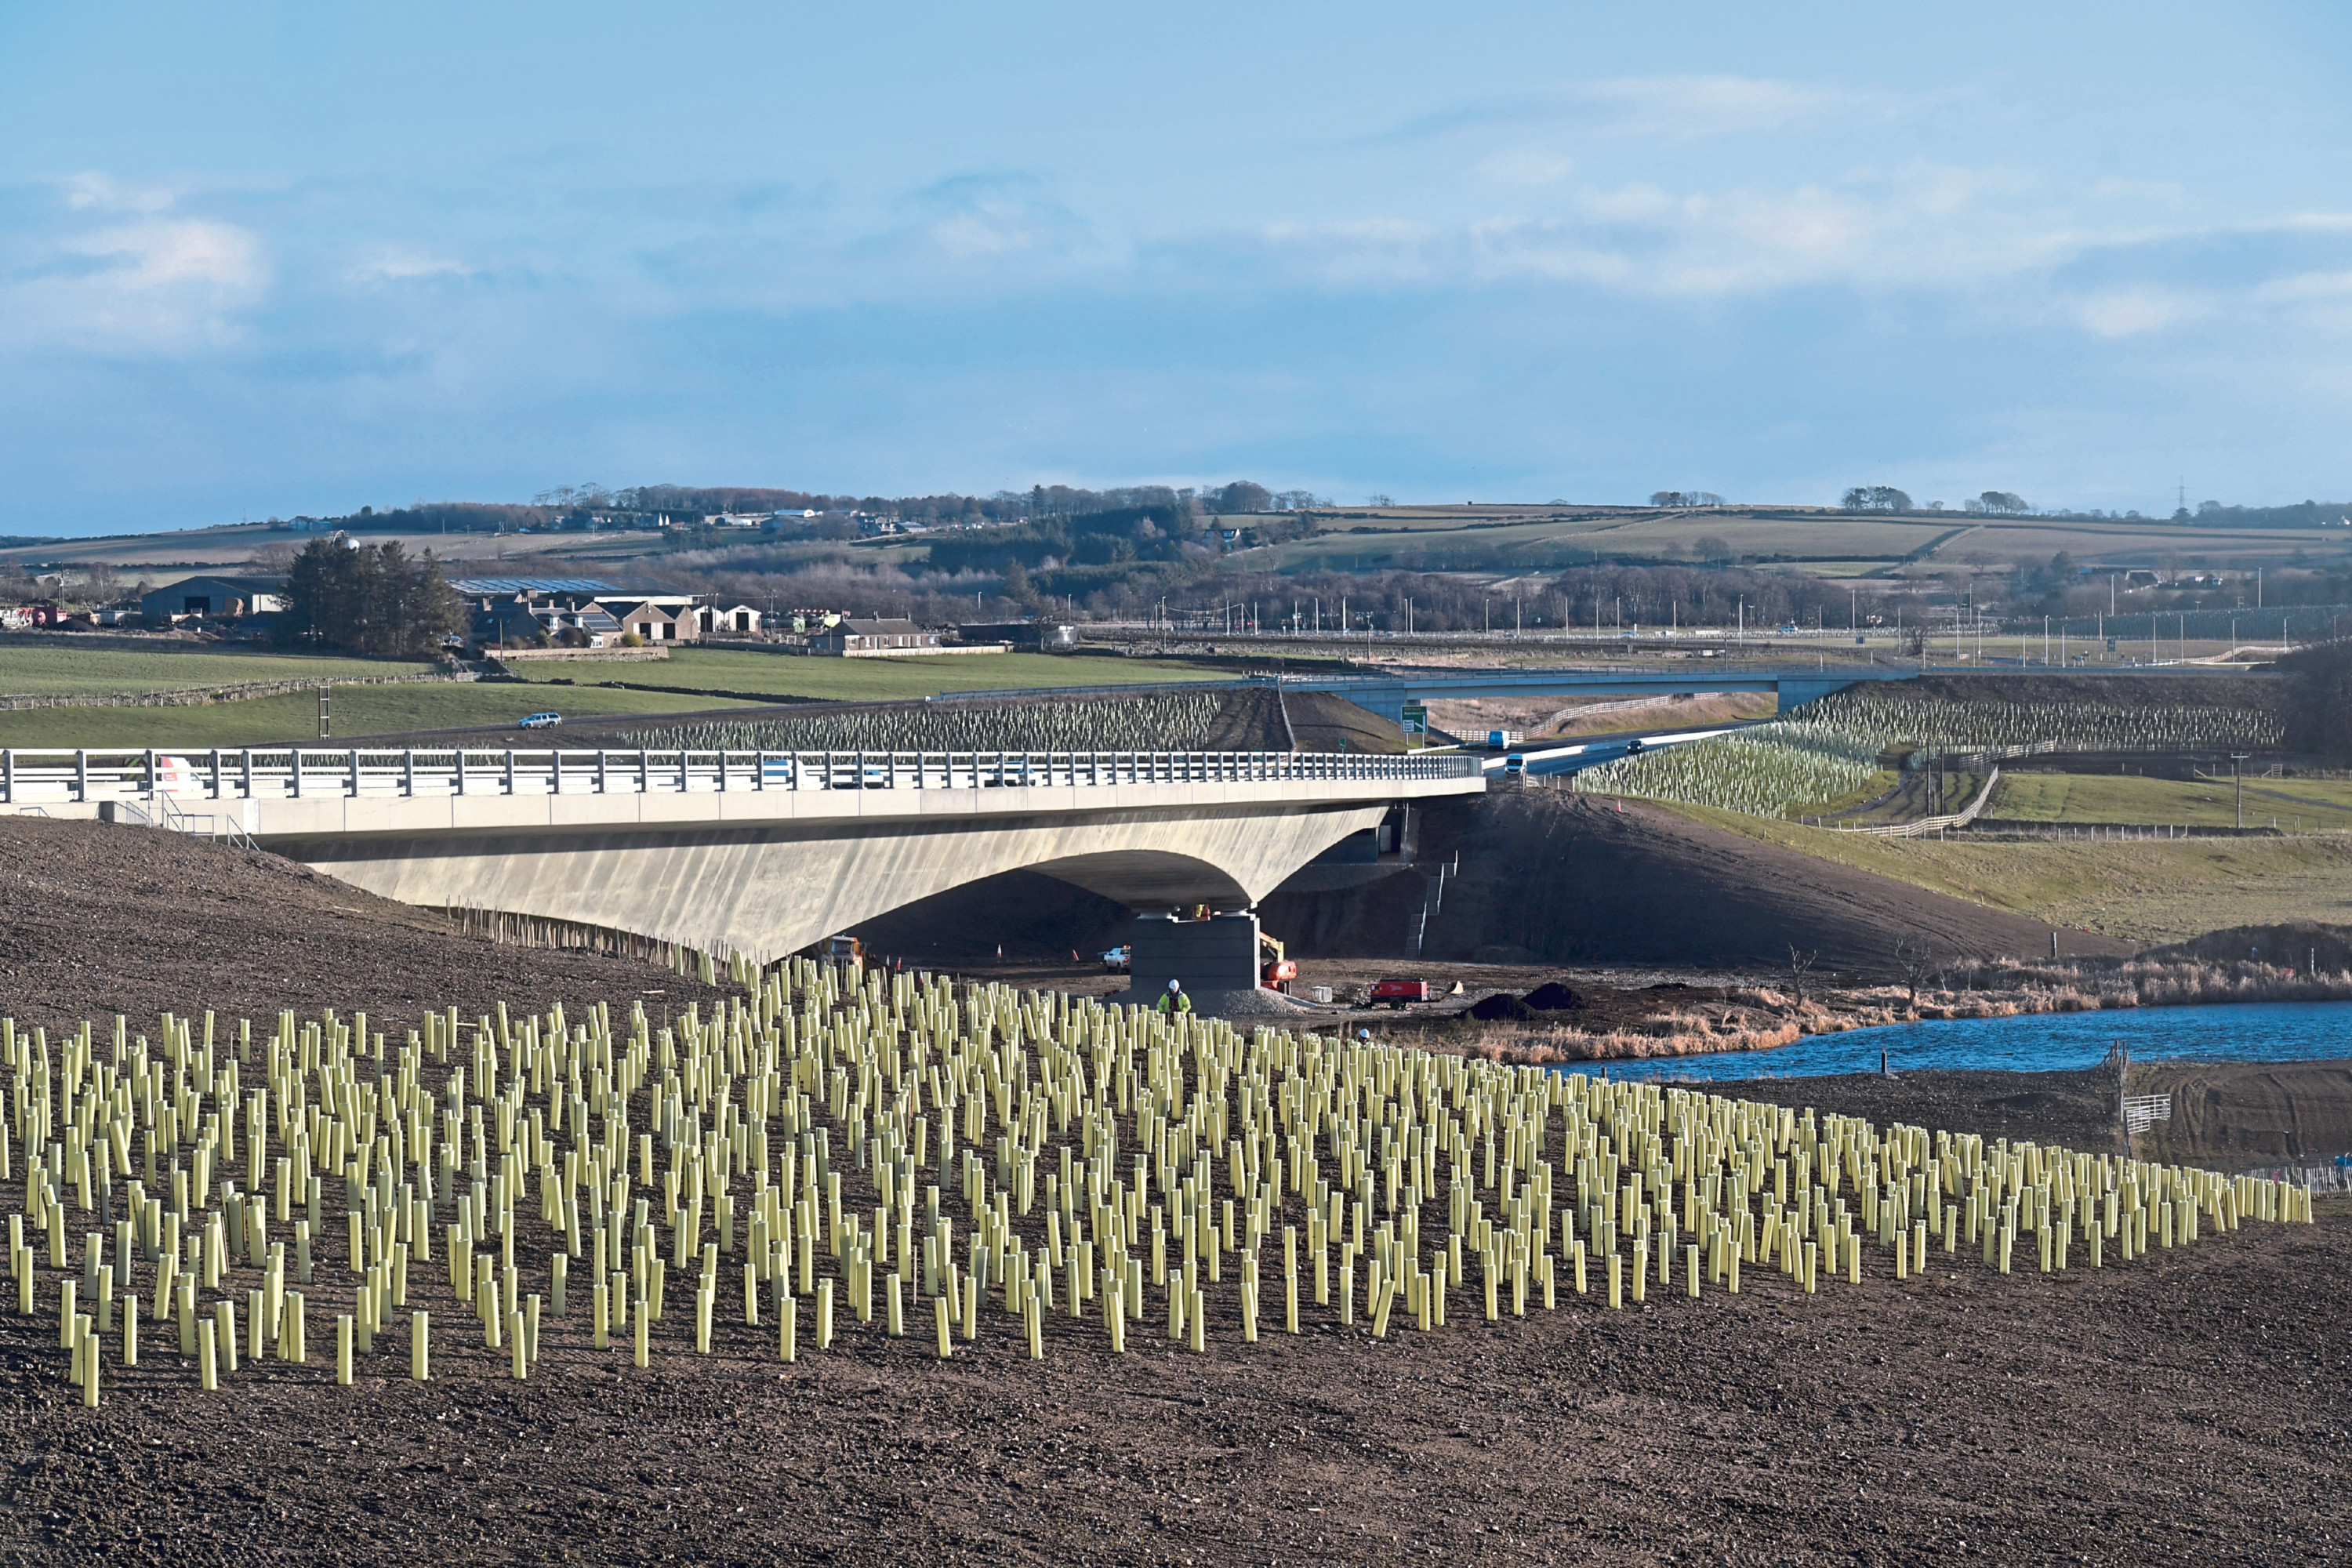 AWPR  Newly open Don Bridge Picture By Kath Flannery 19/02/19